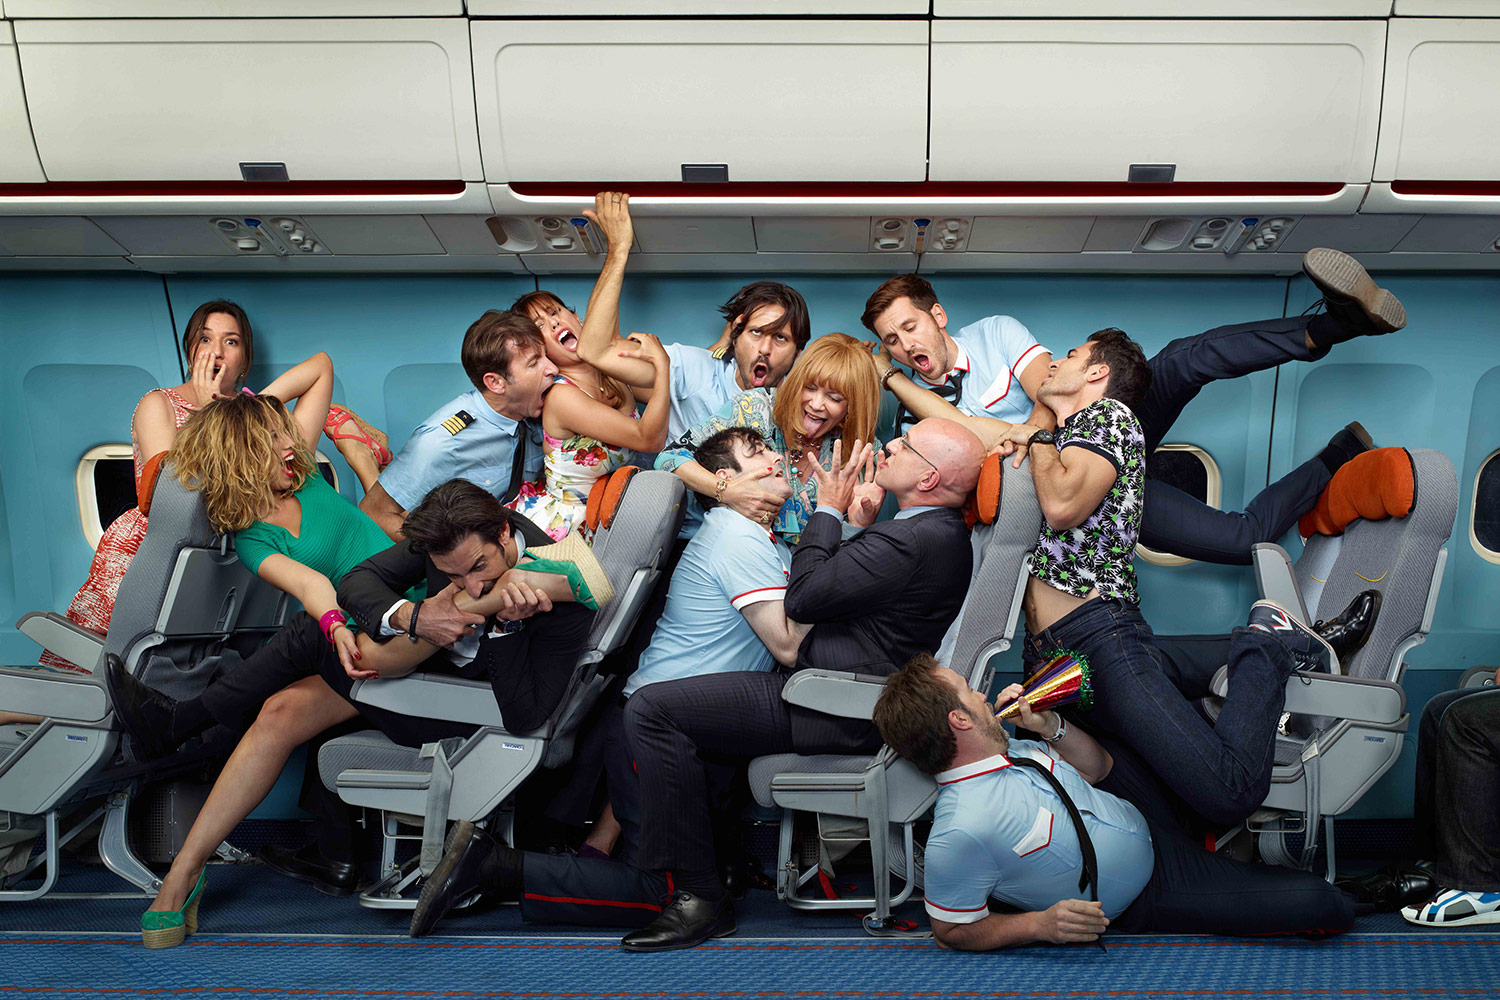 6 Of The Most Ridiculous Moments In Airline History